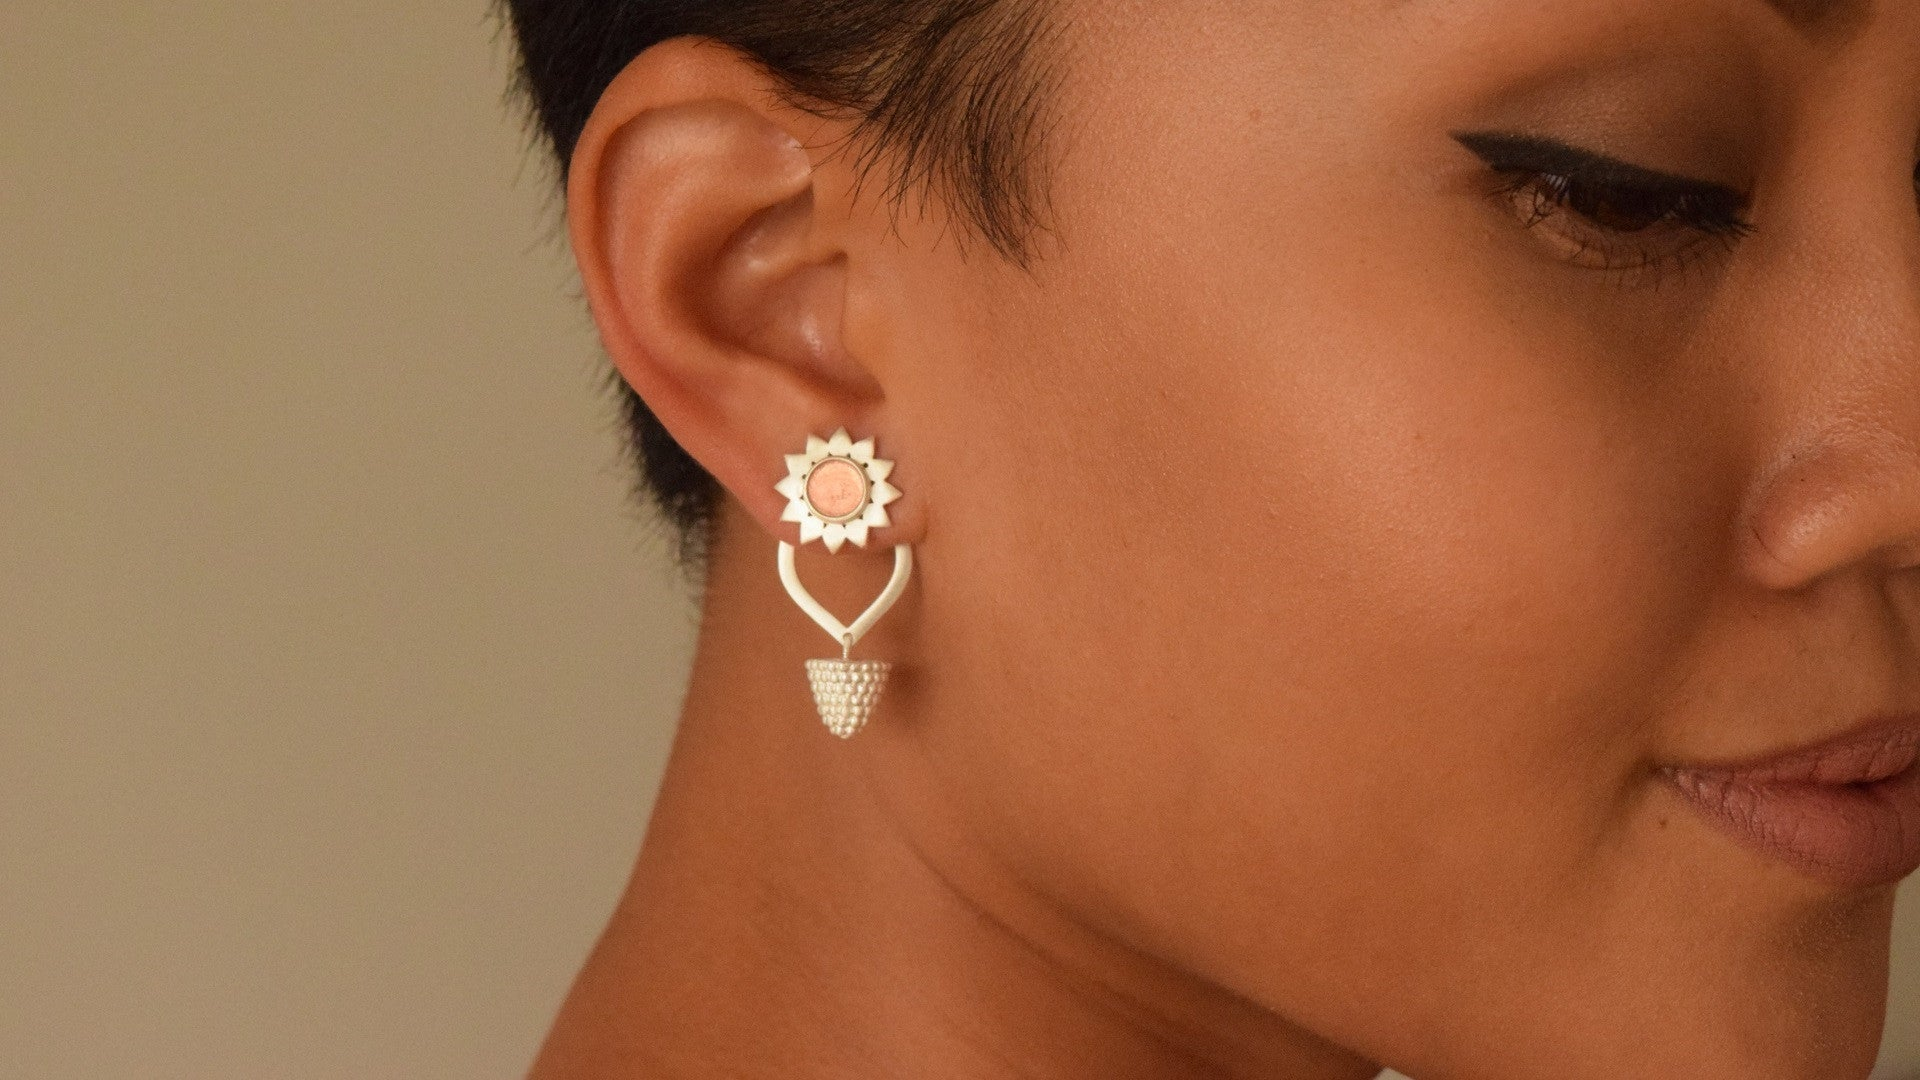 'Malahari' Ear Jackets (SOLD OUT)